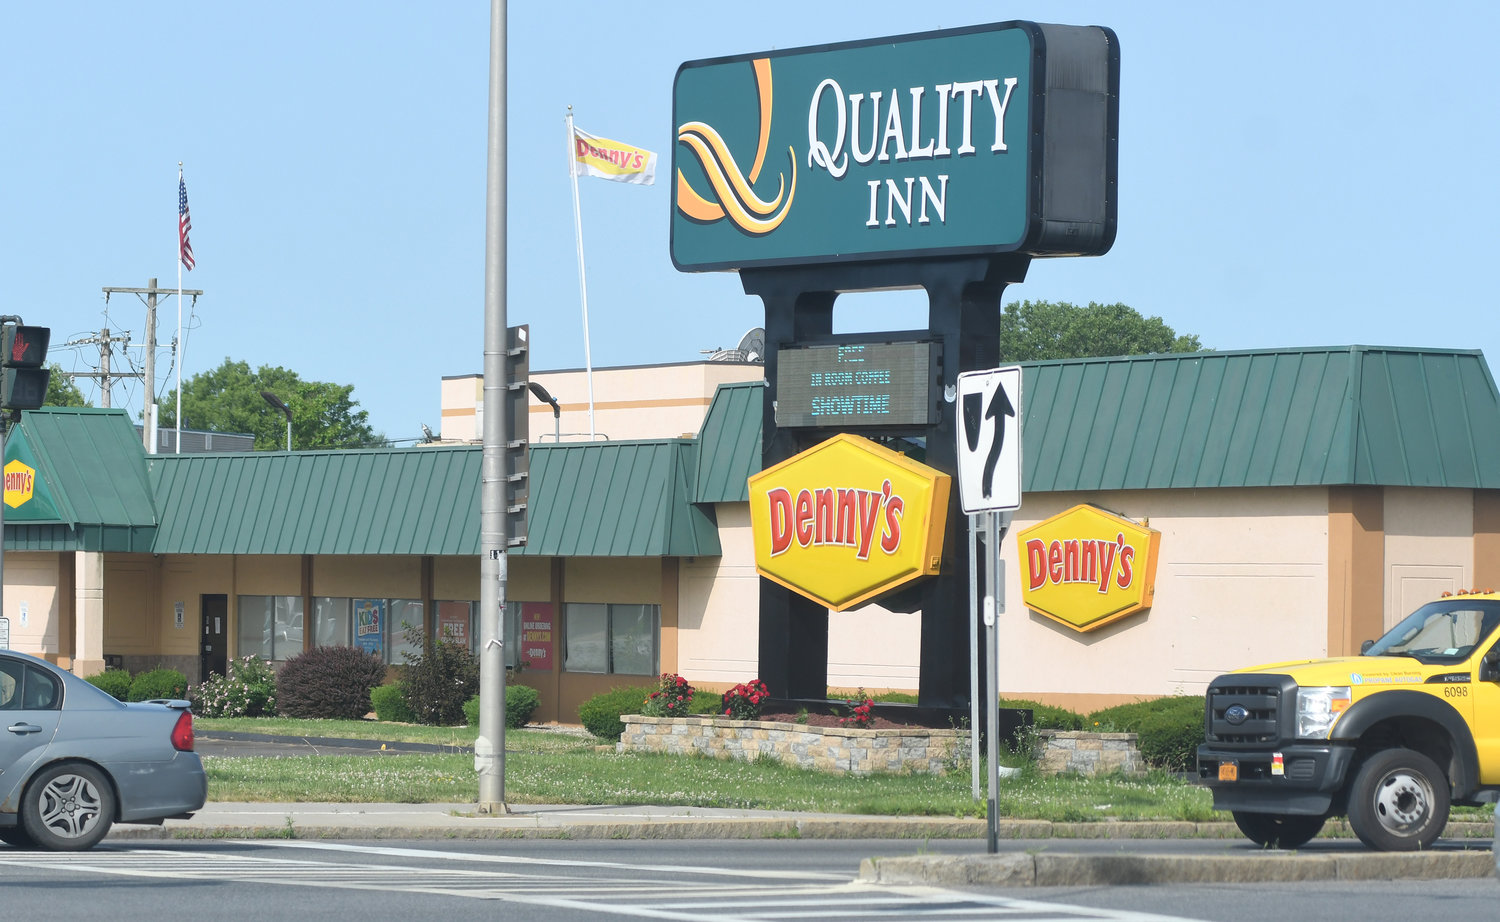 A TEMPORARY CLOSURE — Management at Denny's restaurant, 200 S. James St., says the business was closed over the weekend, but should open by Monday night. Management declined to explain why the diner was shuttered.